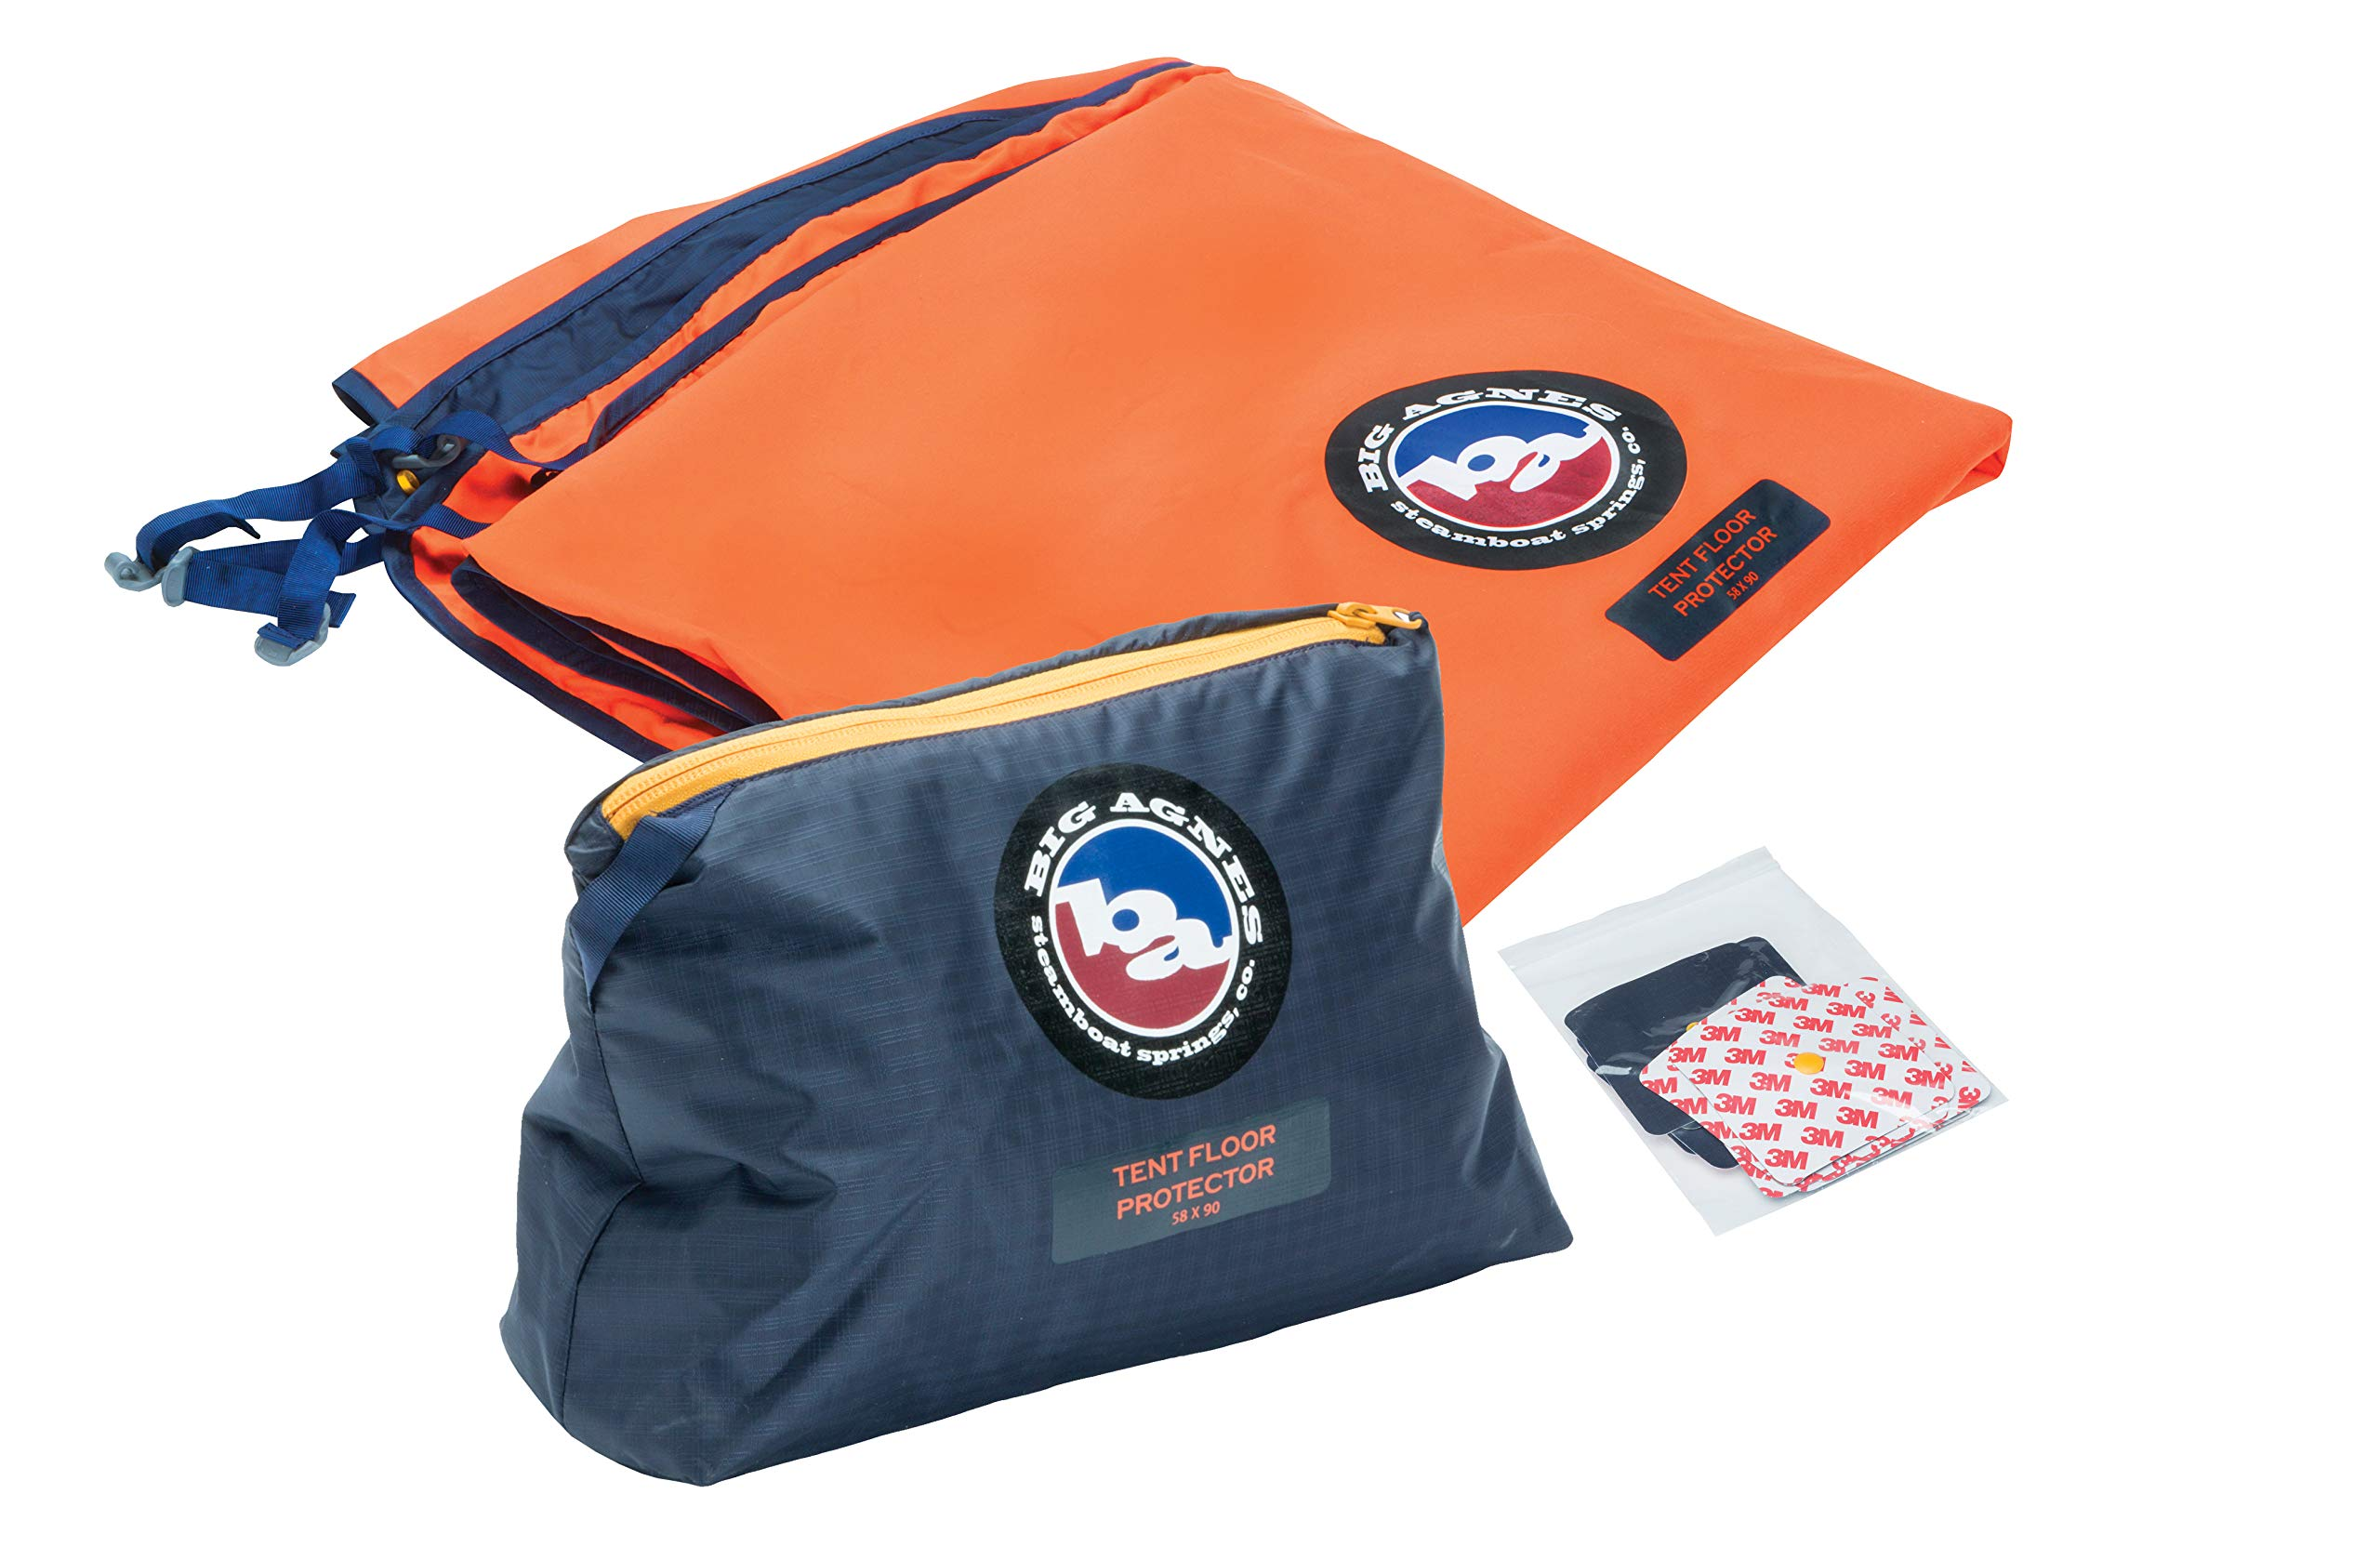 Big Agnes Tent Floor Protector, 58X90, Orange/Navy by Big Agnes